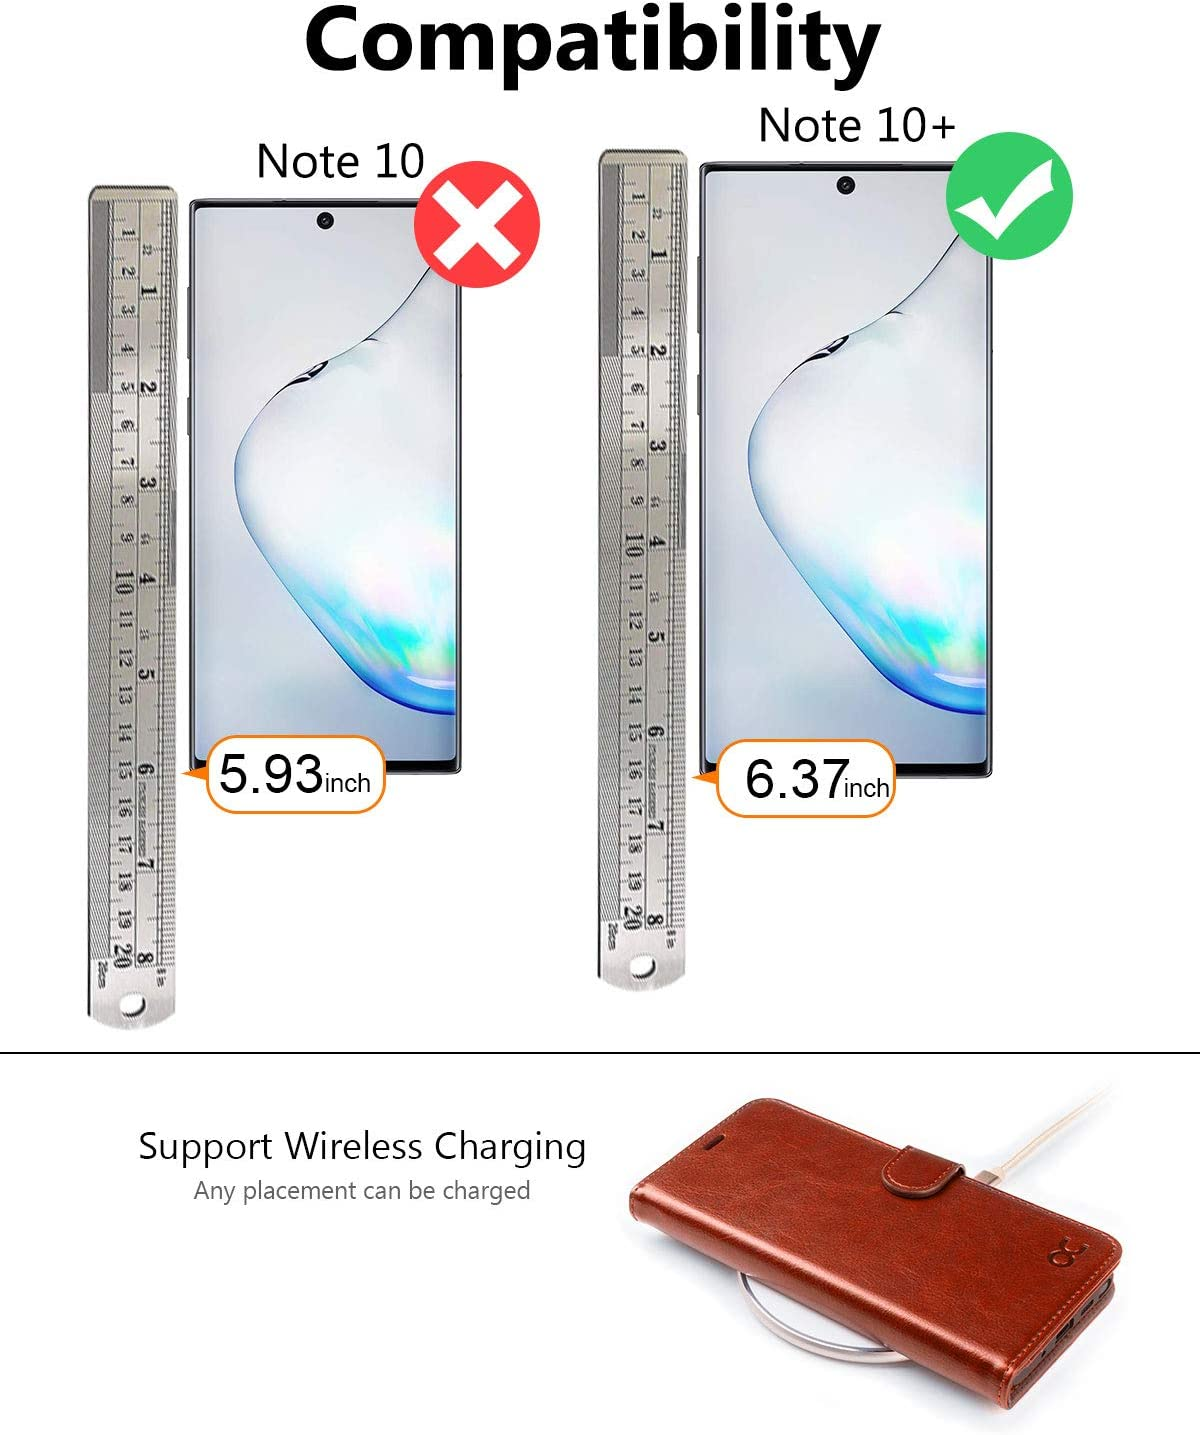 OCASE Galaxy Note 10 Plus Wallet Case, Note 10 Plus 5G Leather Flip Case with Card Holder Kickstand and Magnetic Closure, TPU Shockproof Phone Cover for Samsung Galaxy Note10 Plus 6.8 Inch (Brown)